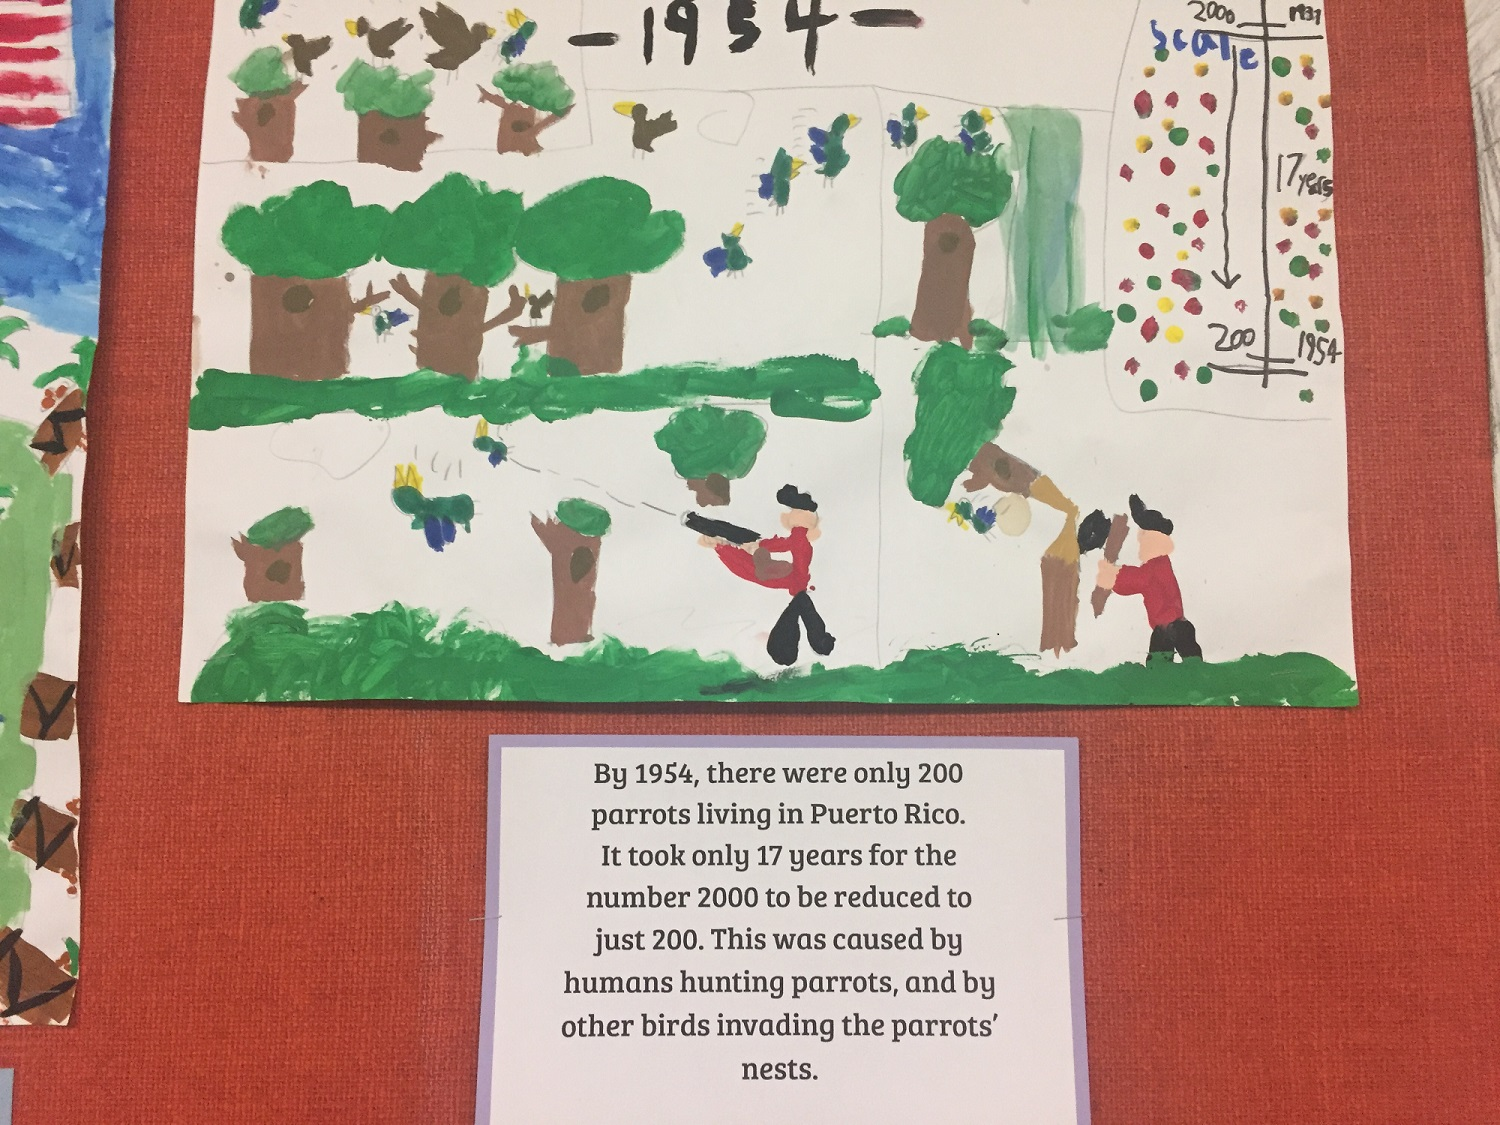 student drawn image of hunters shooting parrots with text below